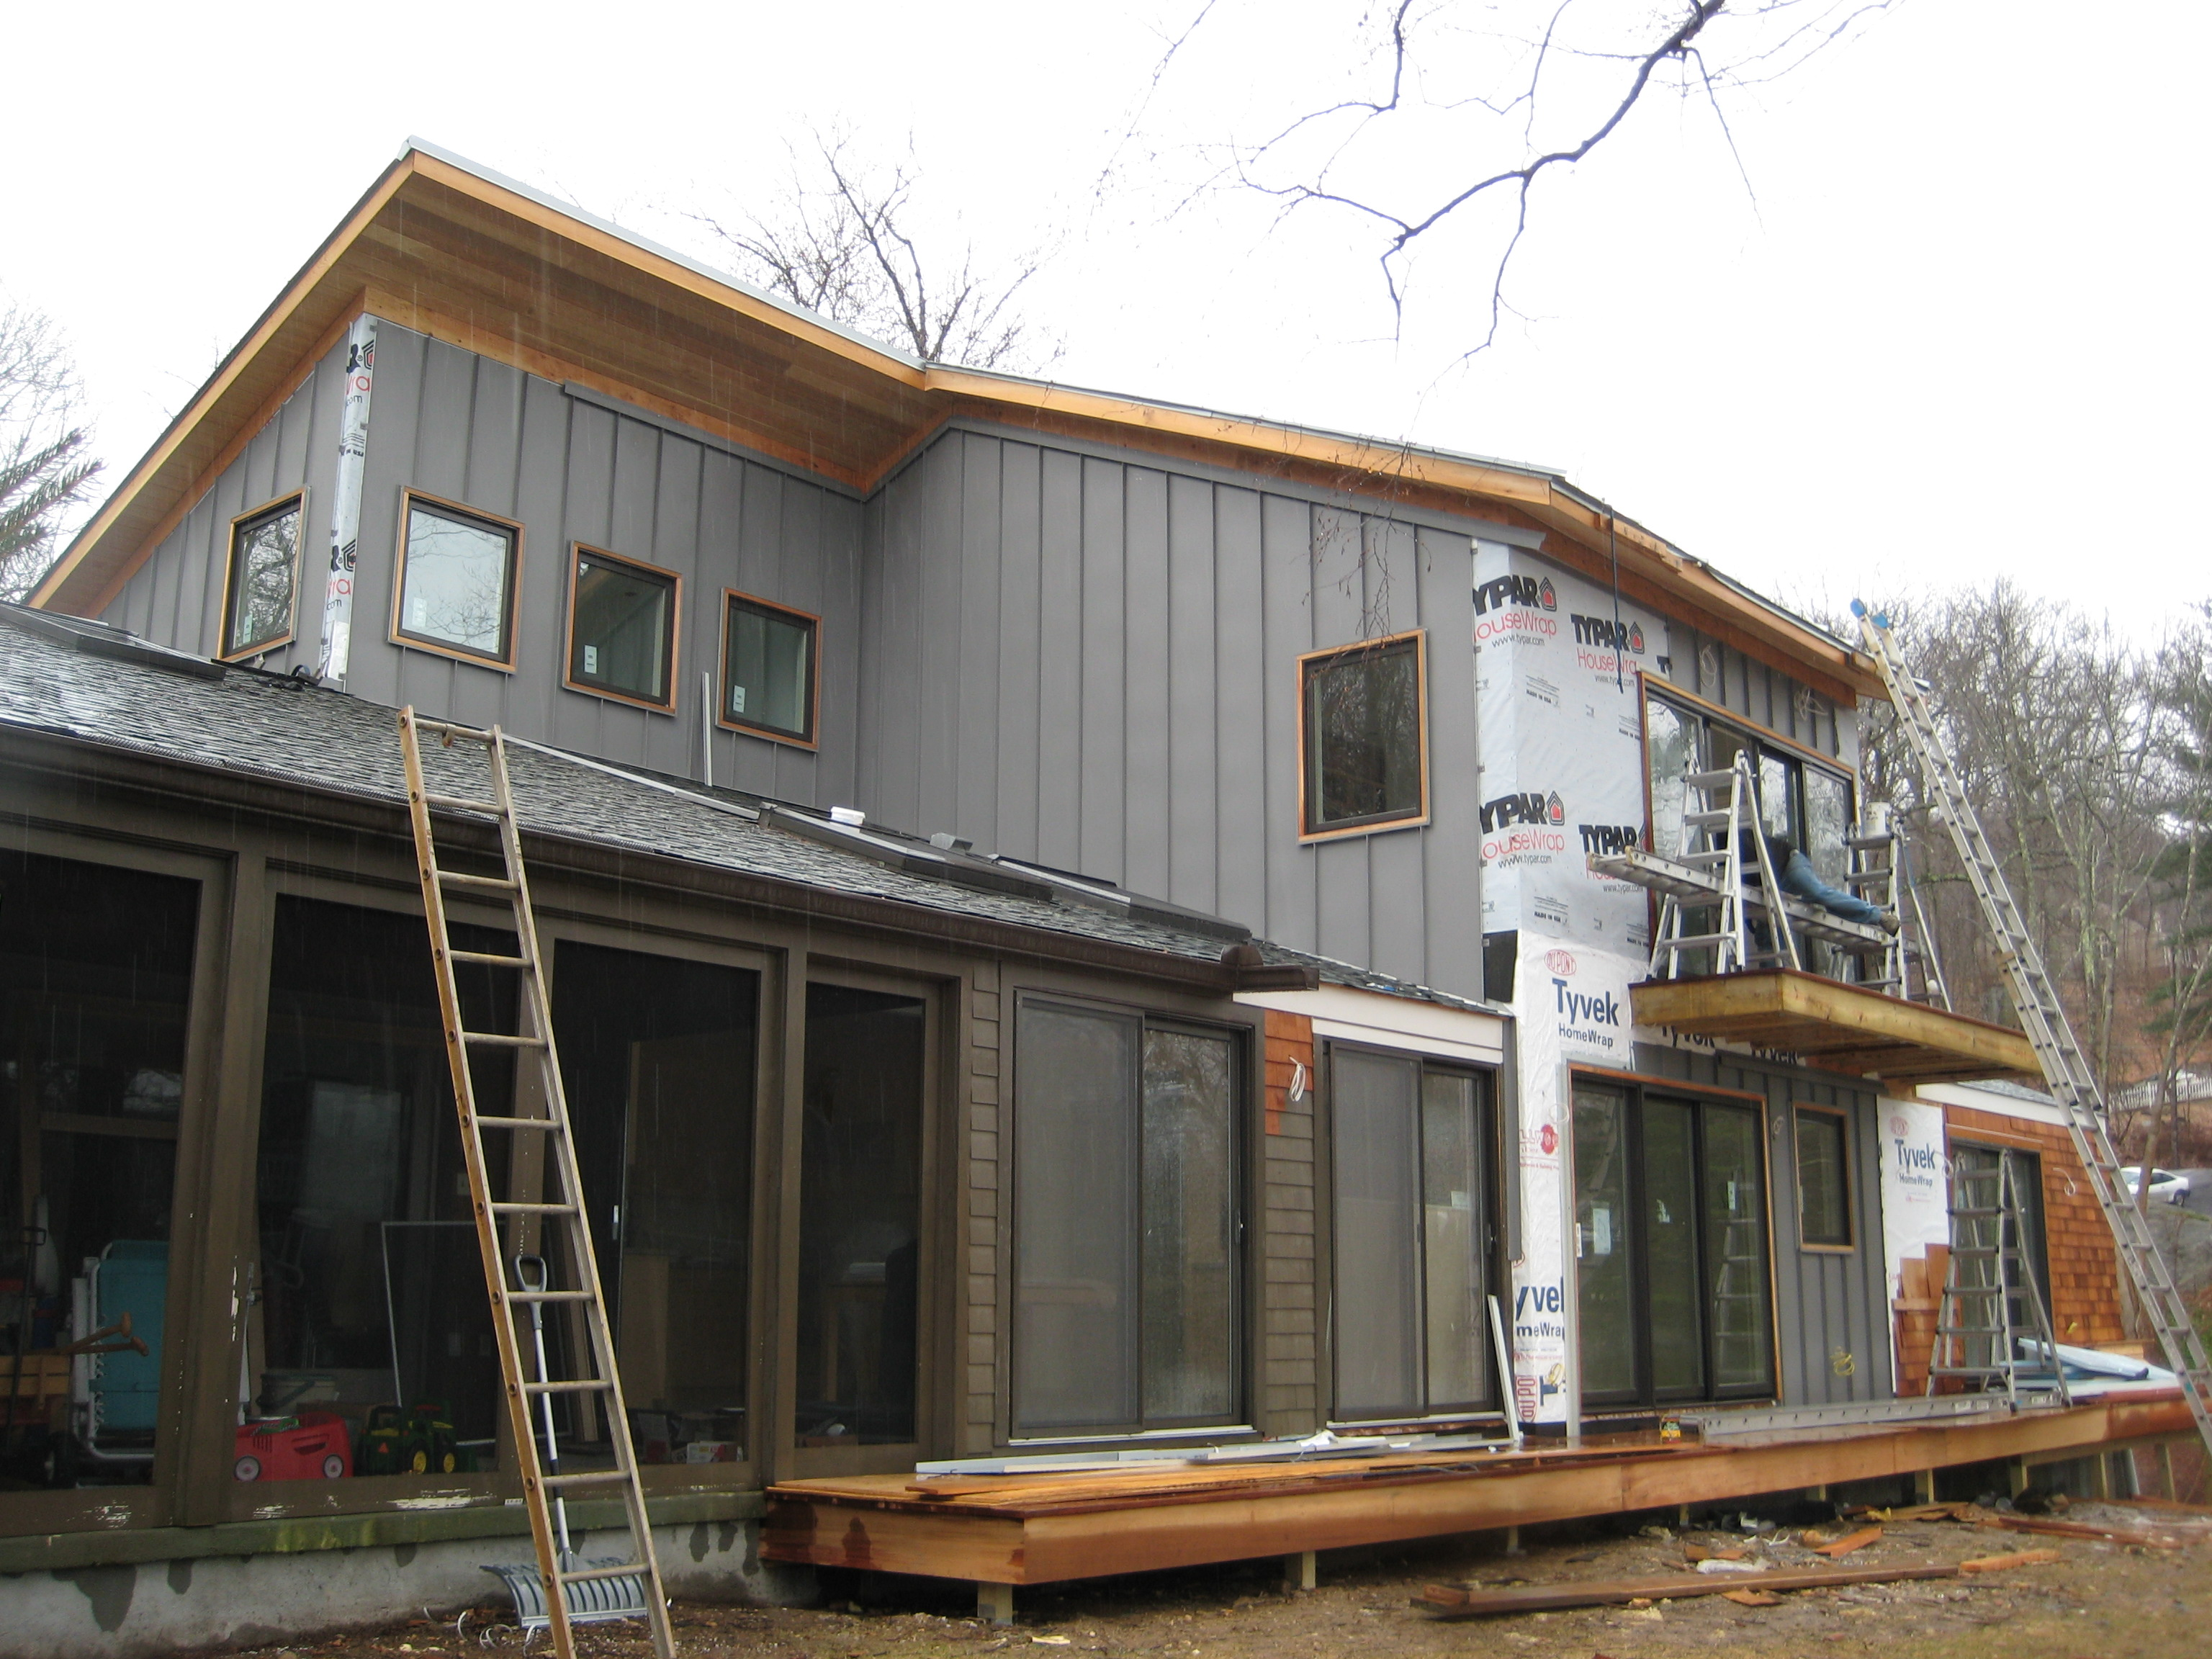 House Siding Options, Plus Costs, Pros & Cons 2019 – Siding Cost on paints for homes, roofing materials for homes, trim for homes, furniture for homes, windows for homes, glass for homes, vinyl siding homes, manufactured stone for homes, stucco for homes, doors for homes,